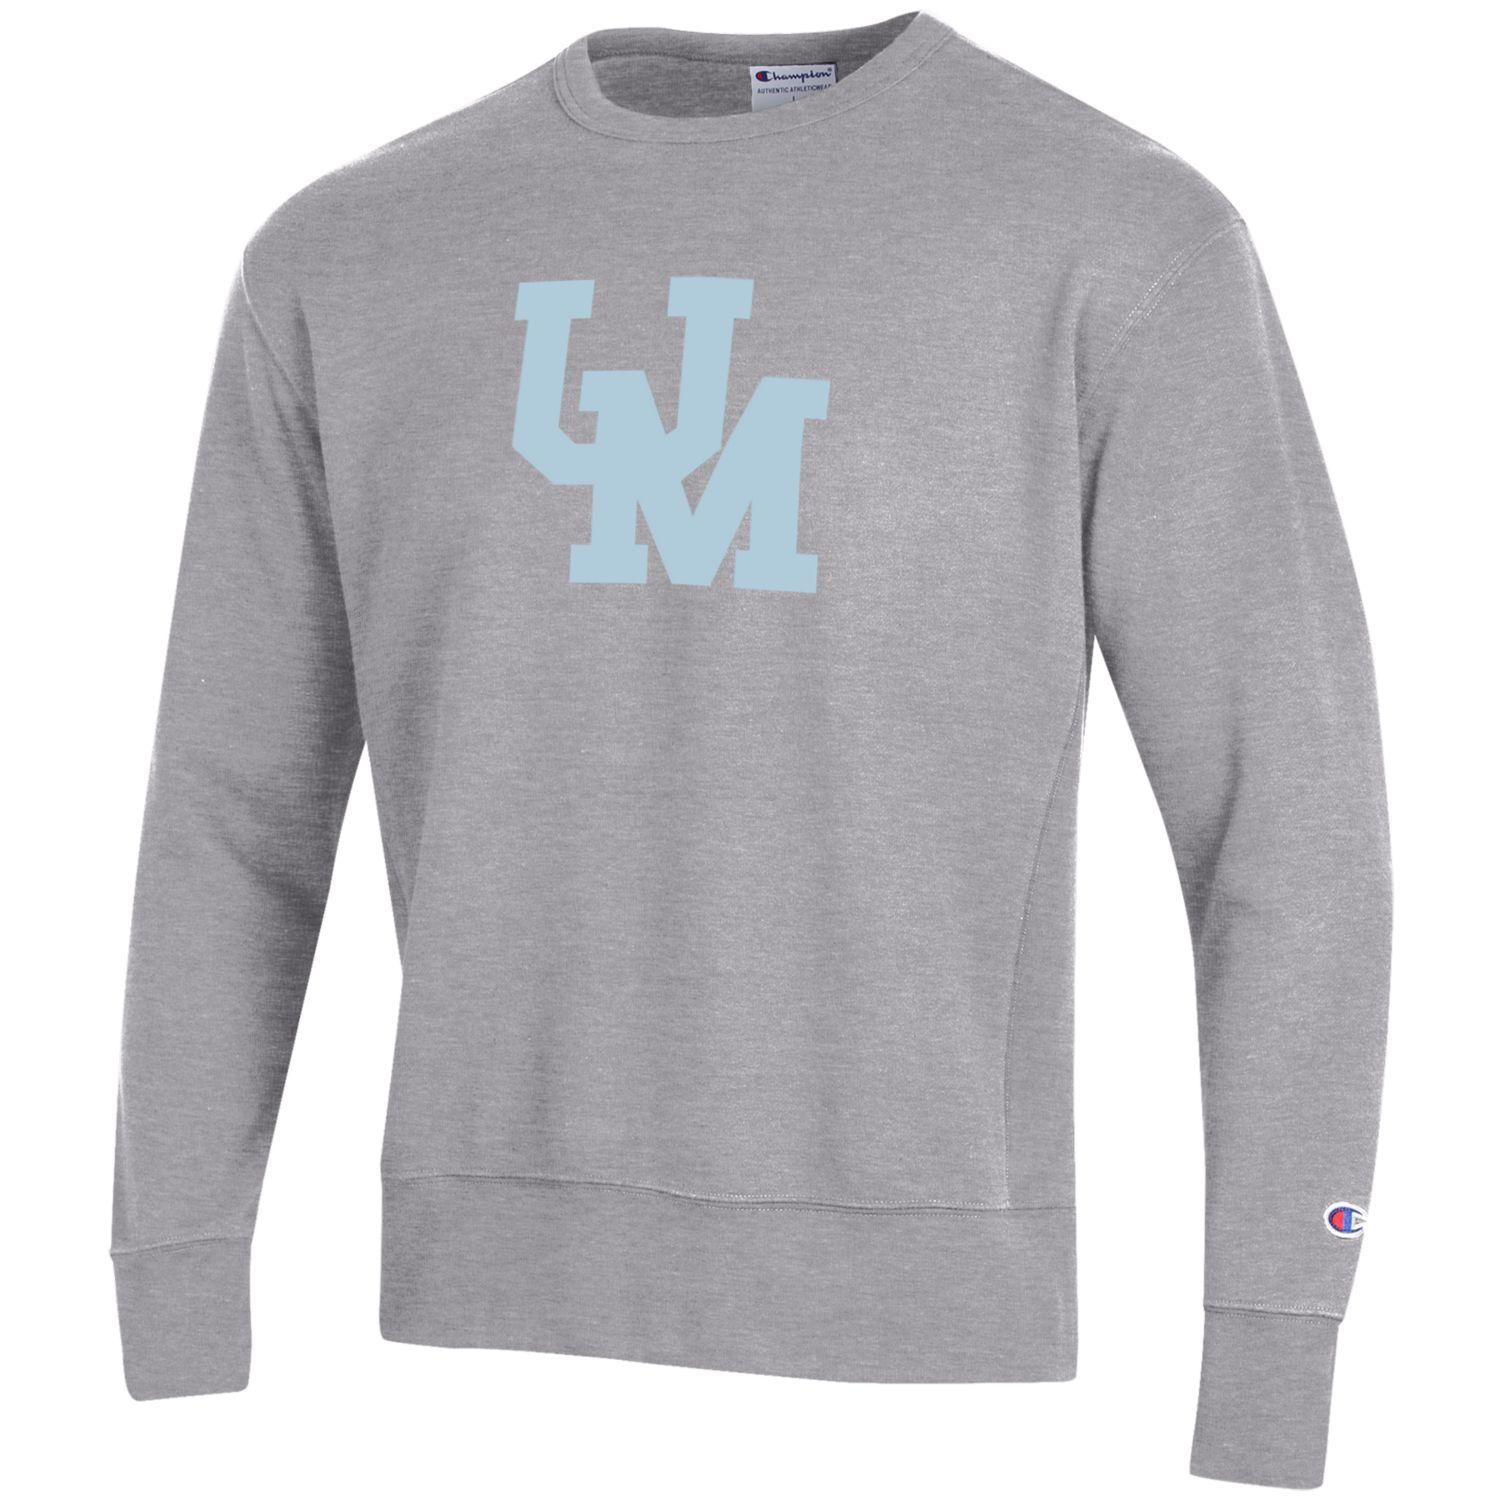 Champion Vault UM Applique Crewneck Sweatshirt